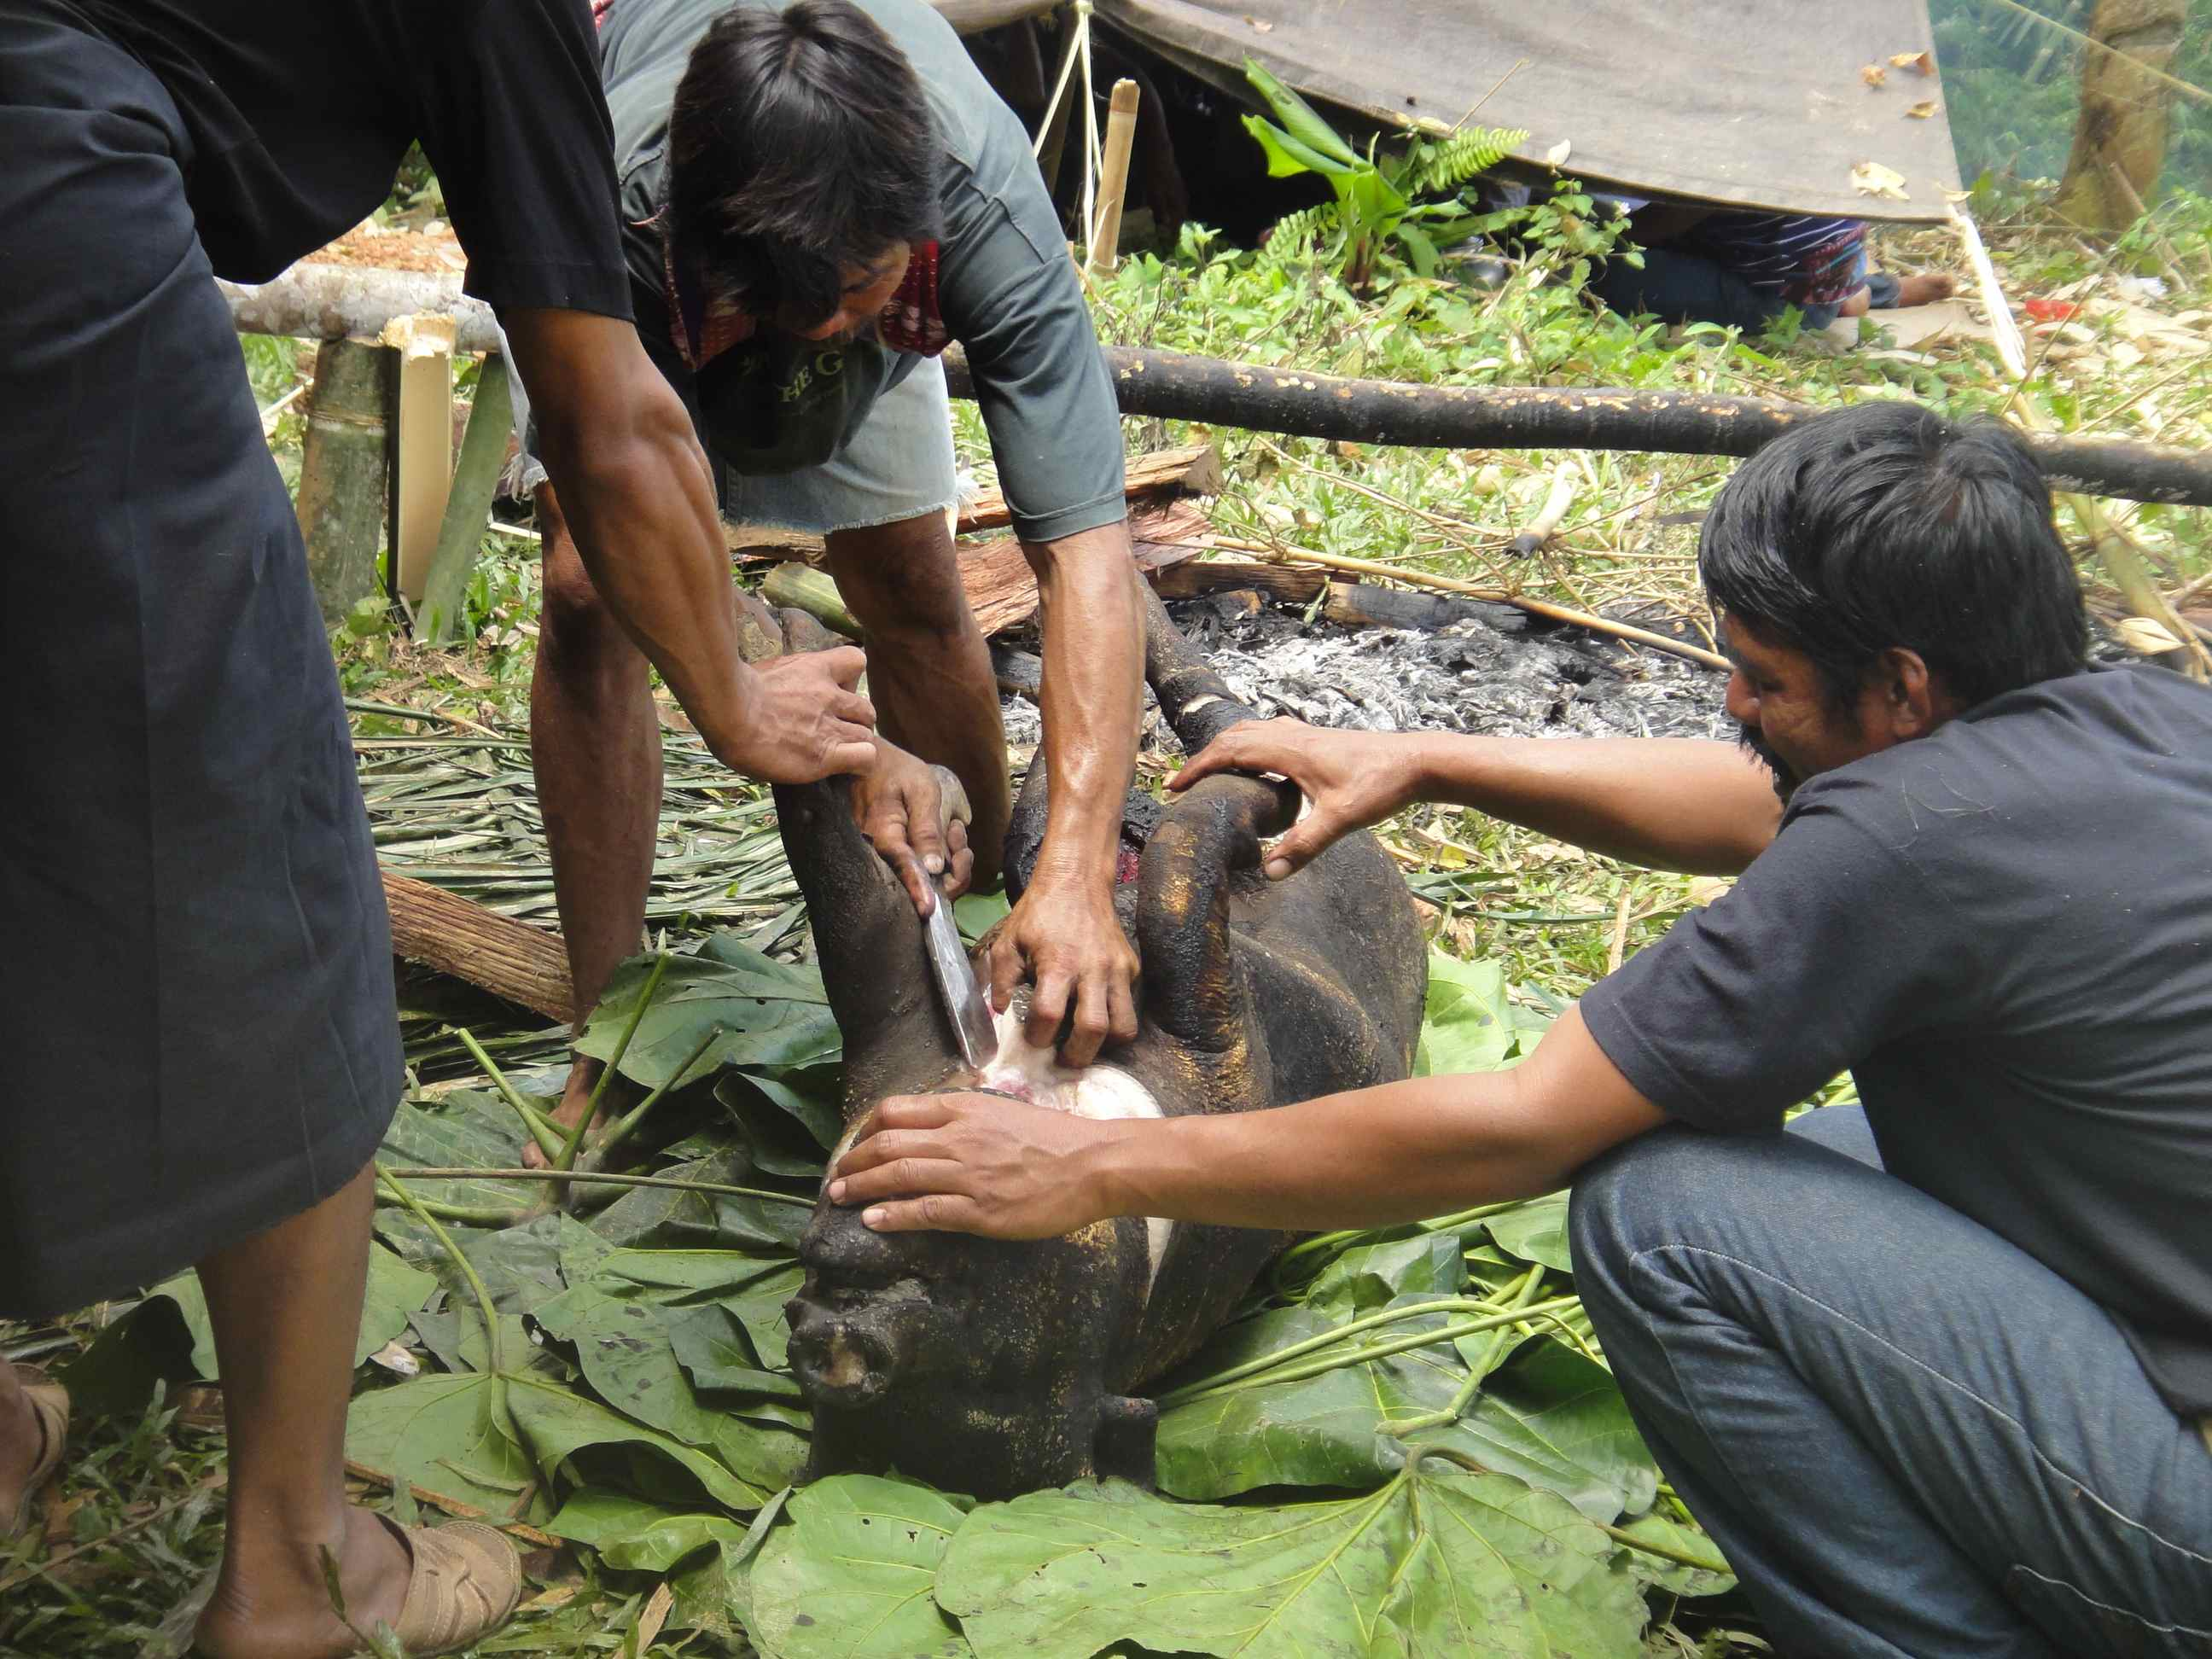 Men butchering a singed pig. Tana Toraja, Sulawesi, Indonesia.